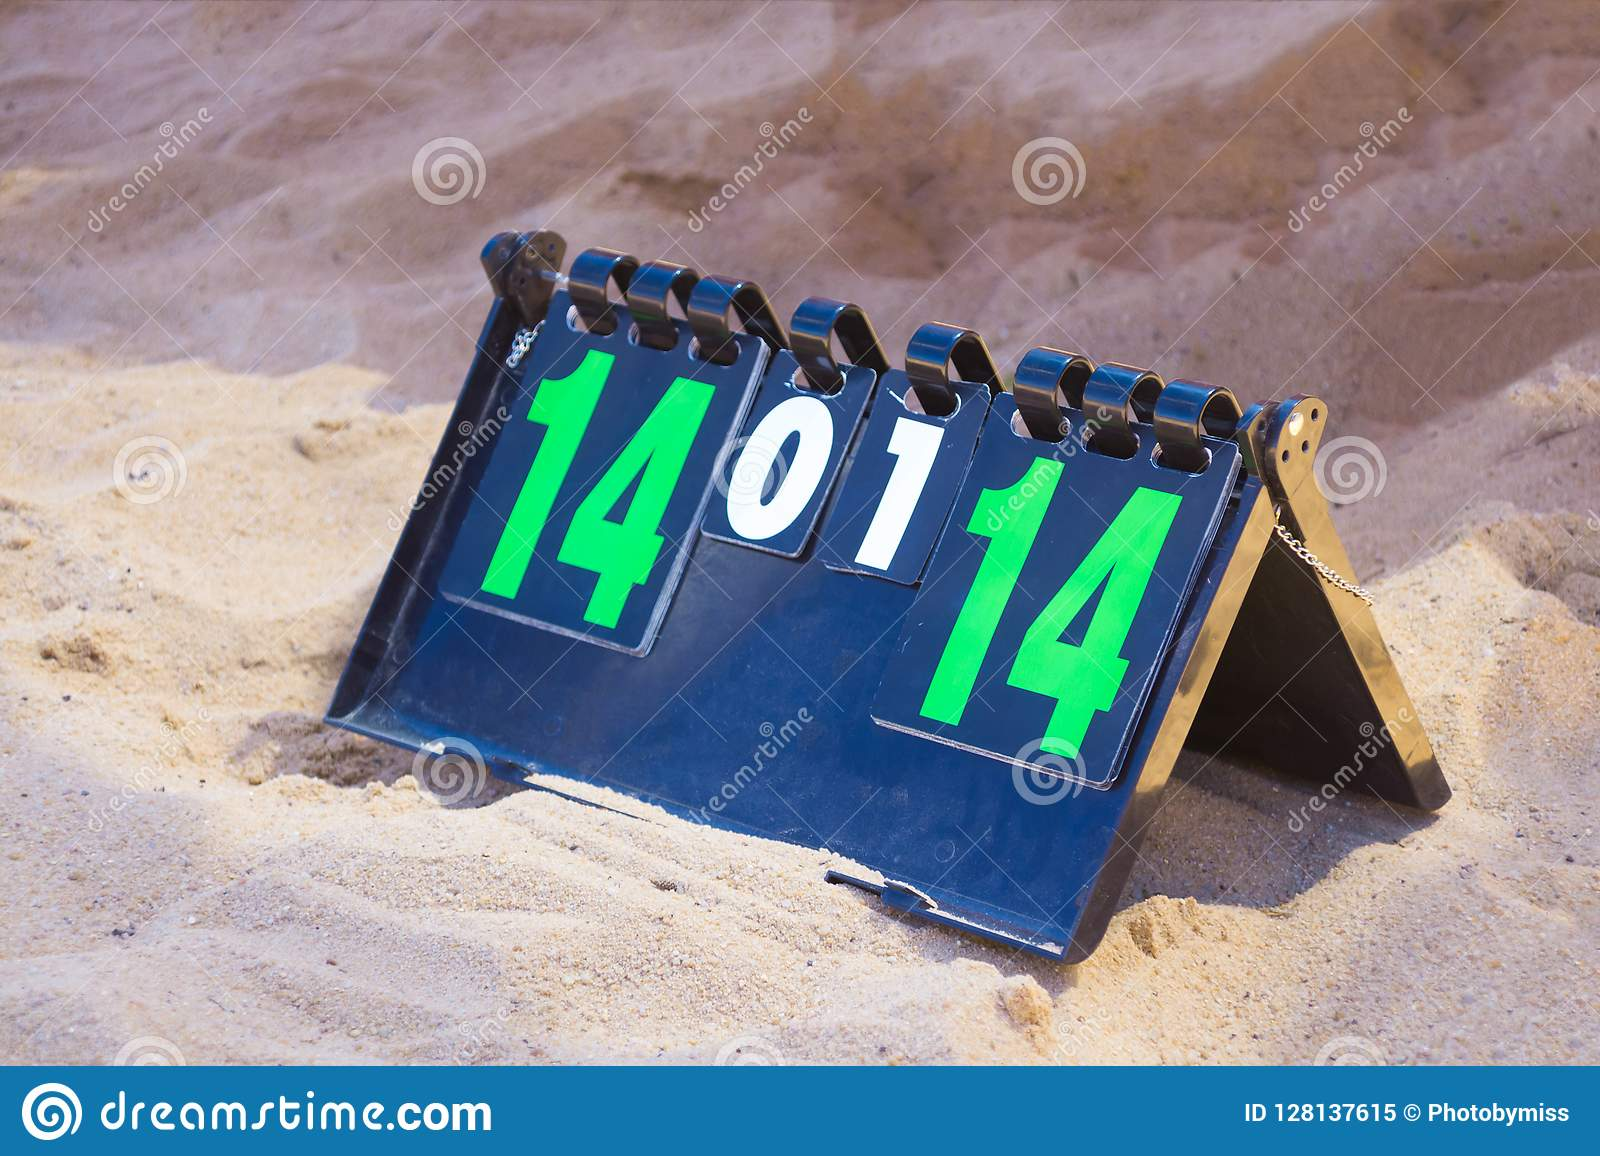 Close up of sport volleyball scoreboard on the summer sand. Score - tie, 14-14